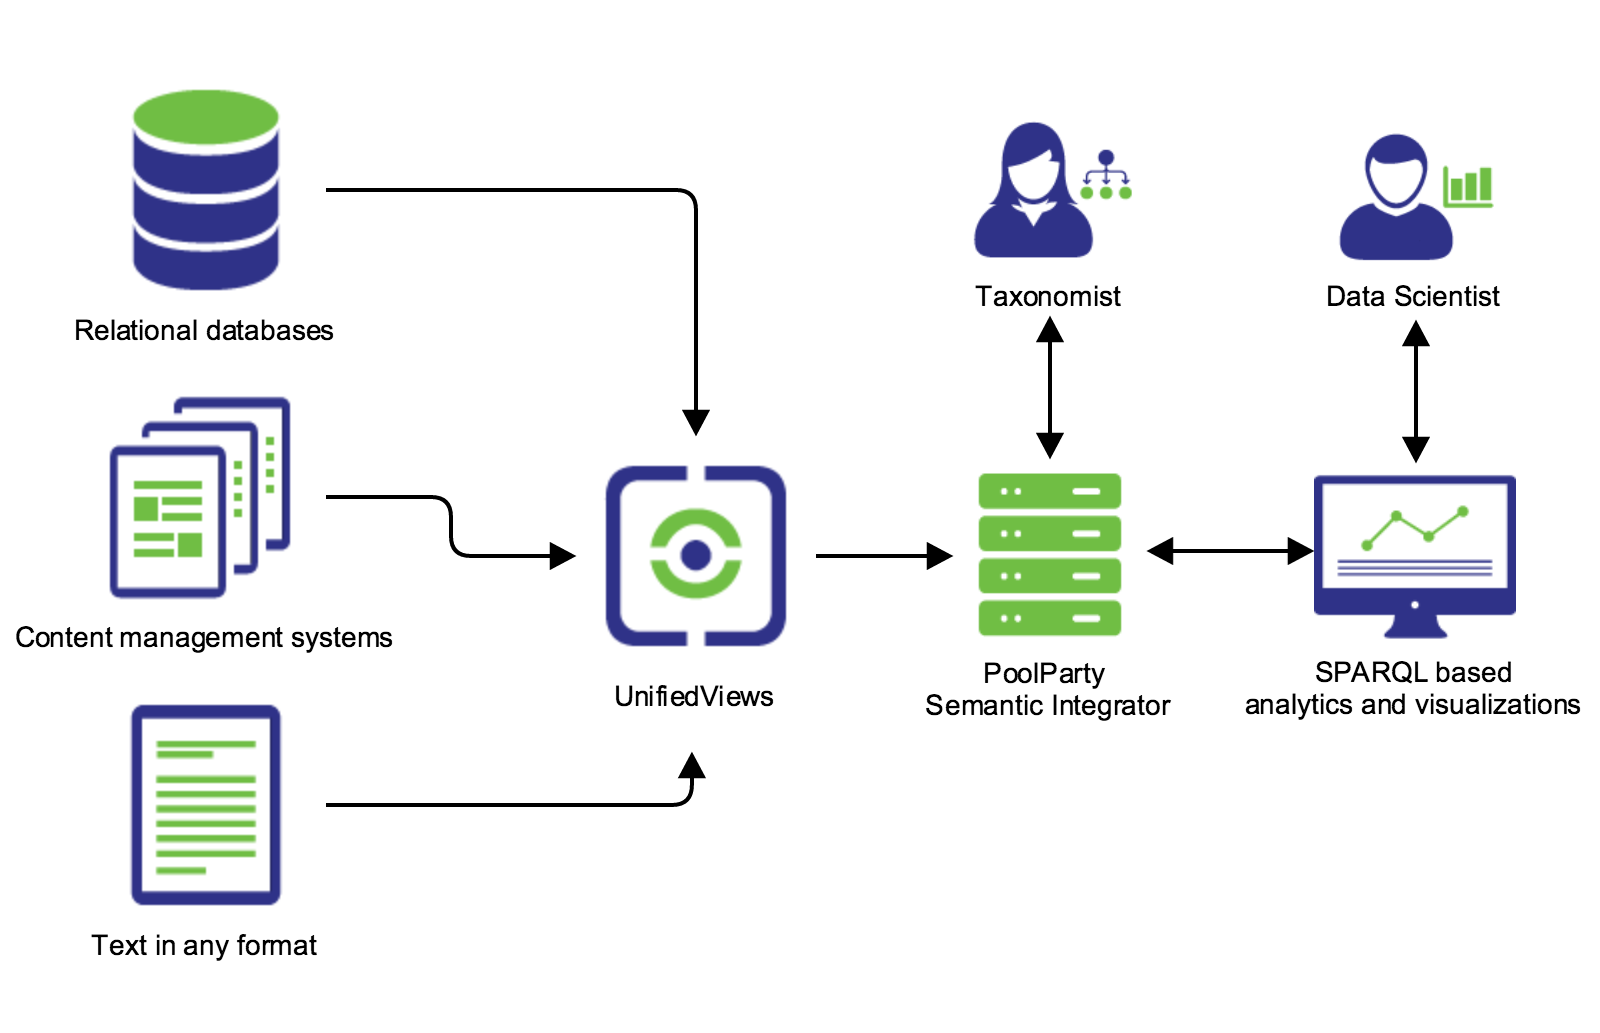 Search platform architecture image